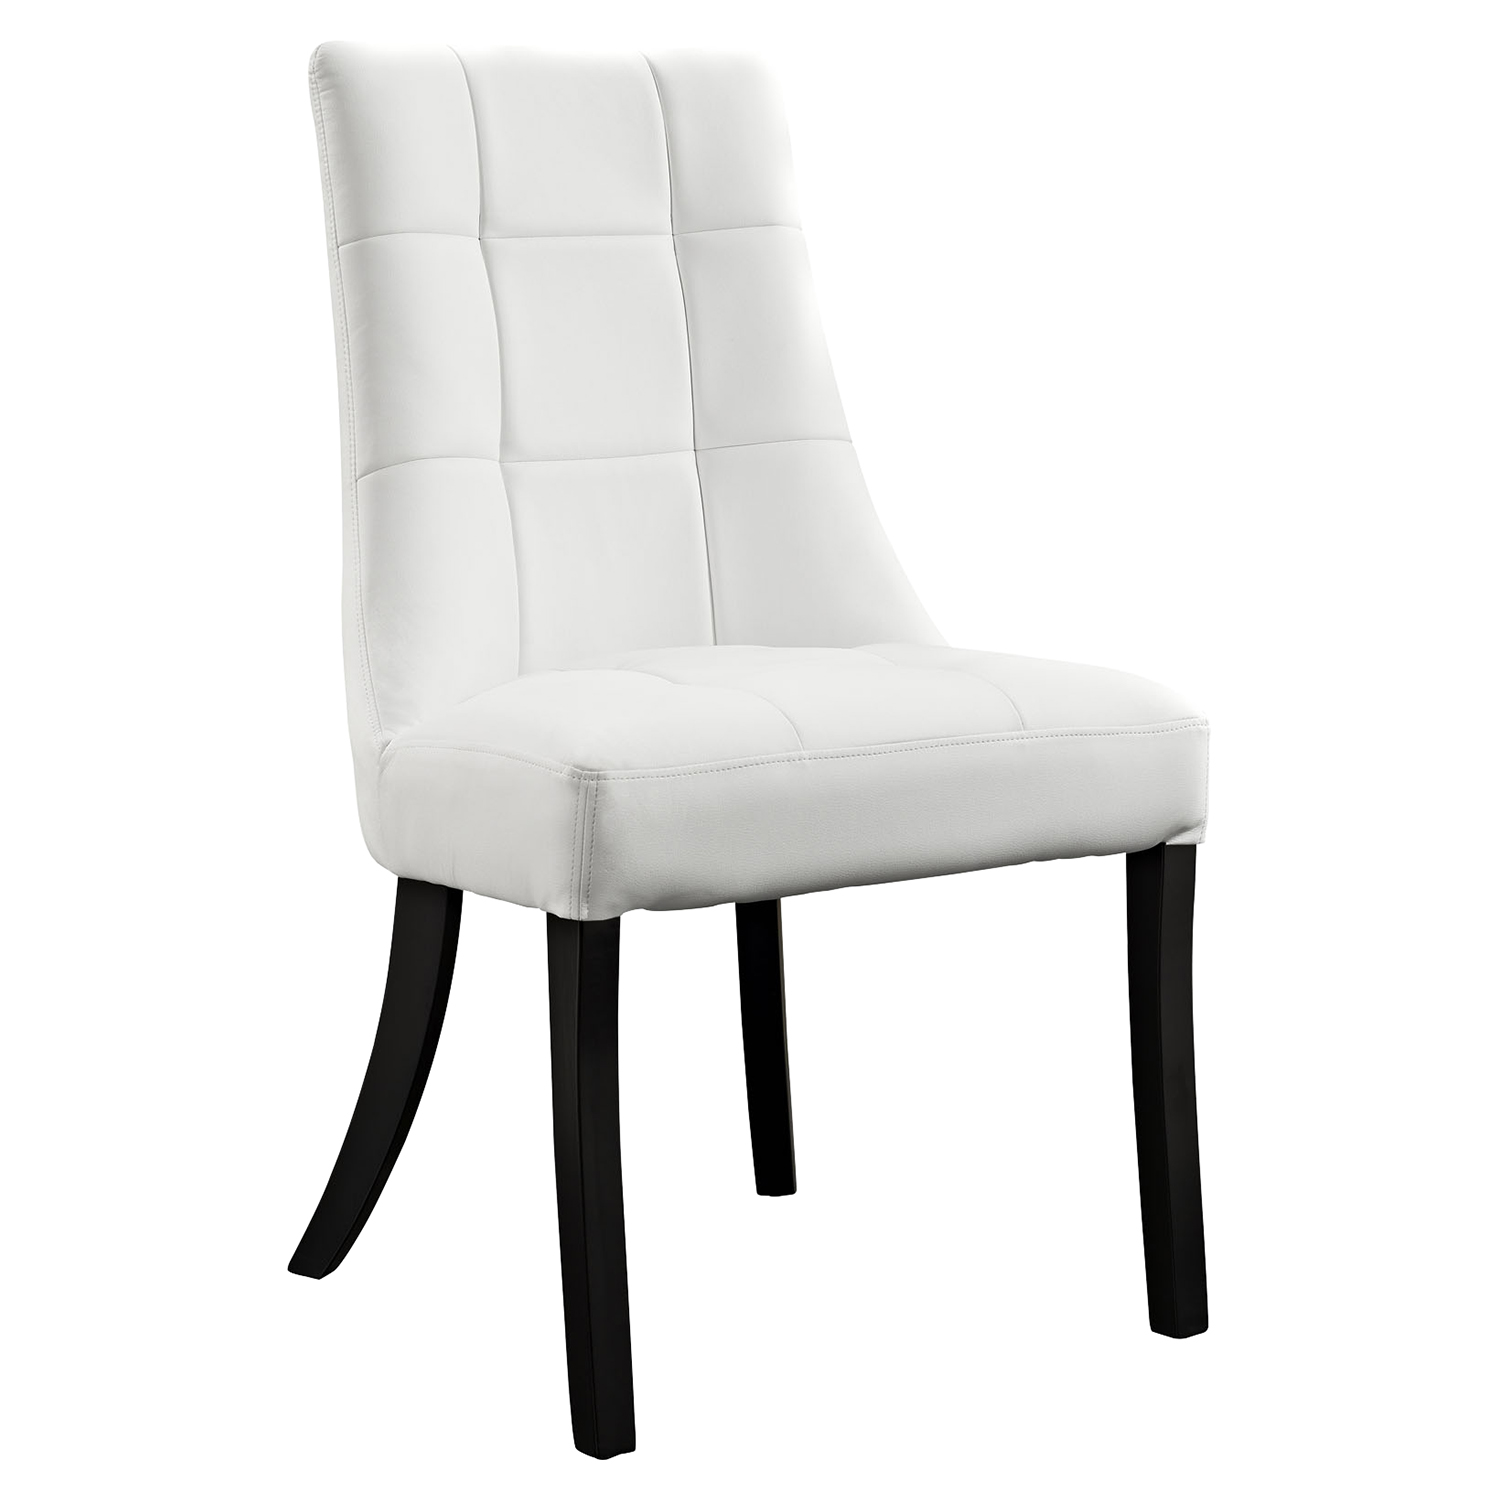 Noblesse Dining Leatherette Side Chair - White - EEI-1039-WHI